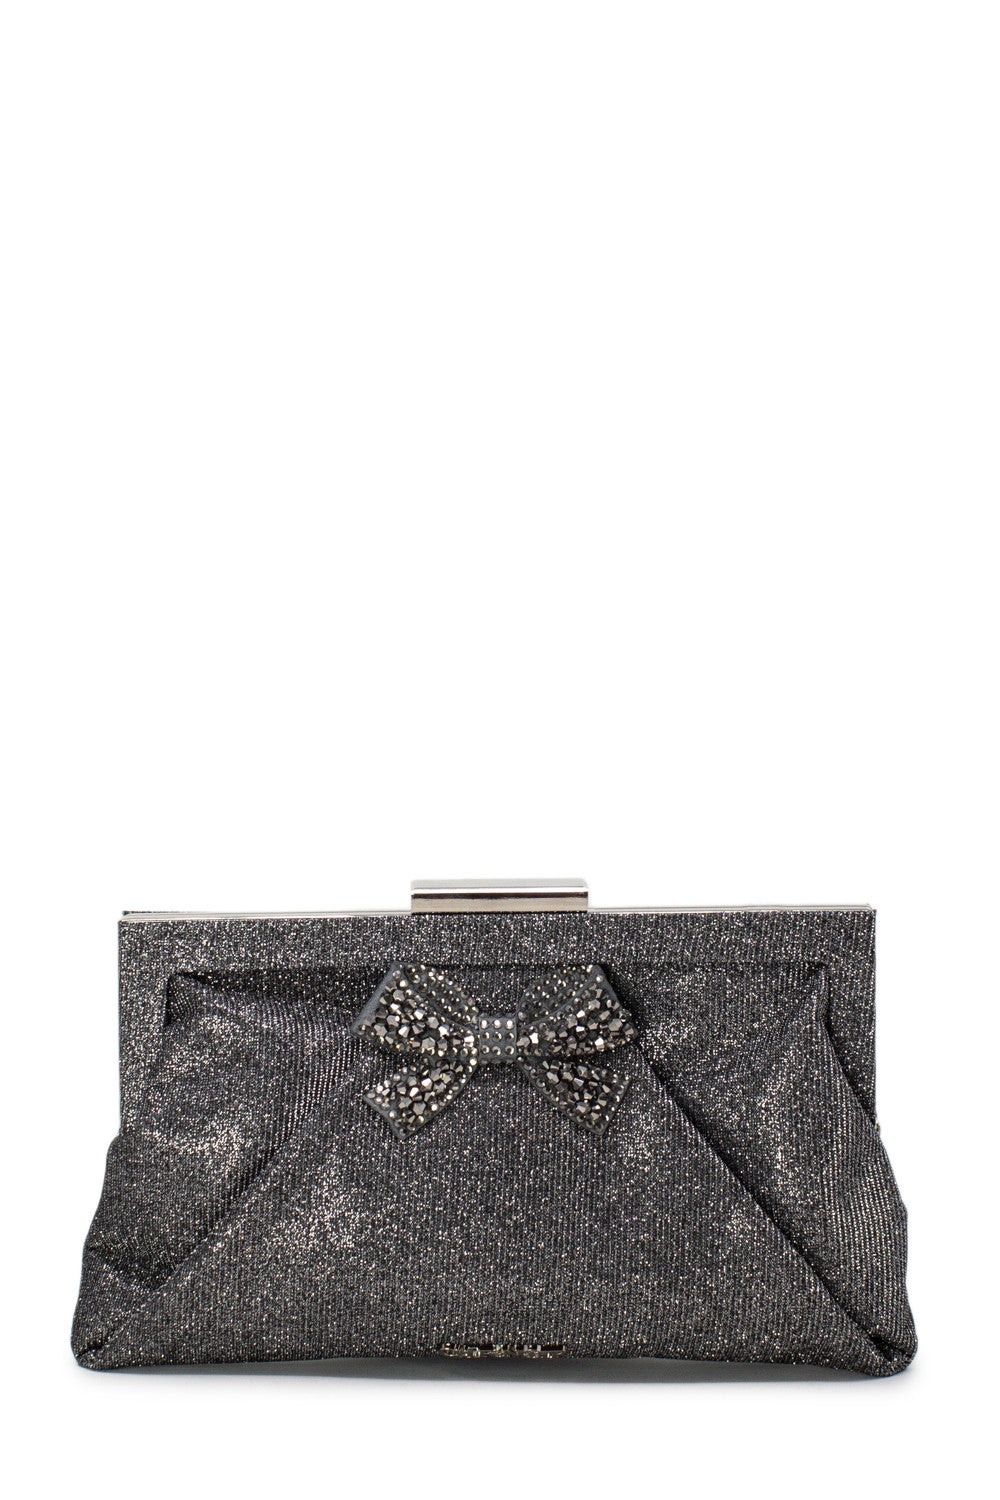 Caf Noir Woman Bag